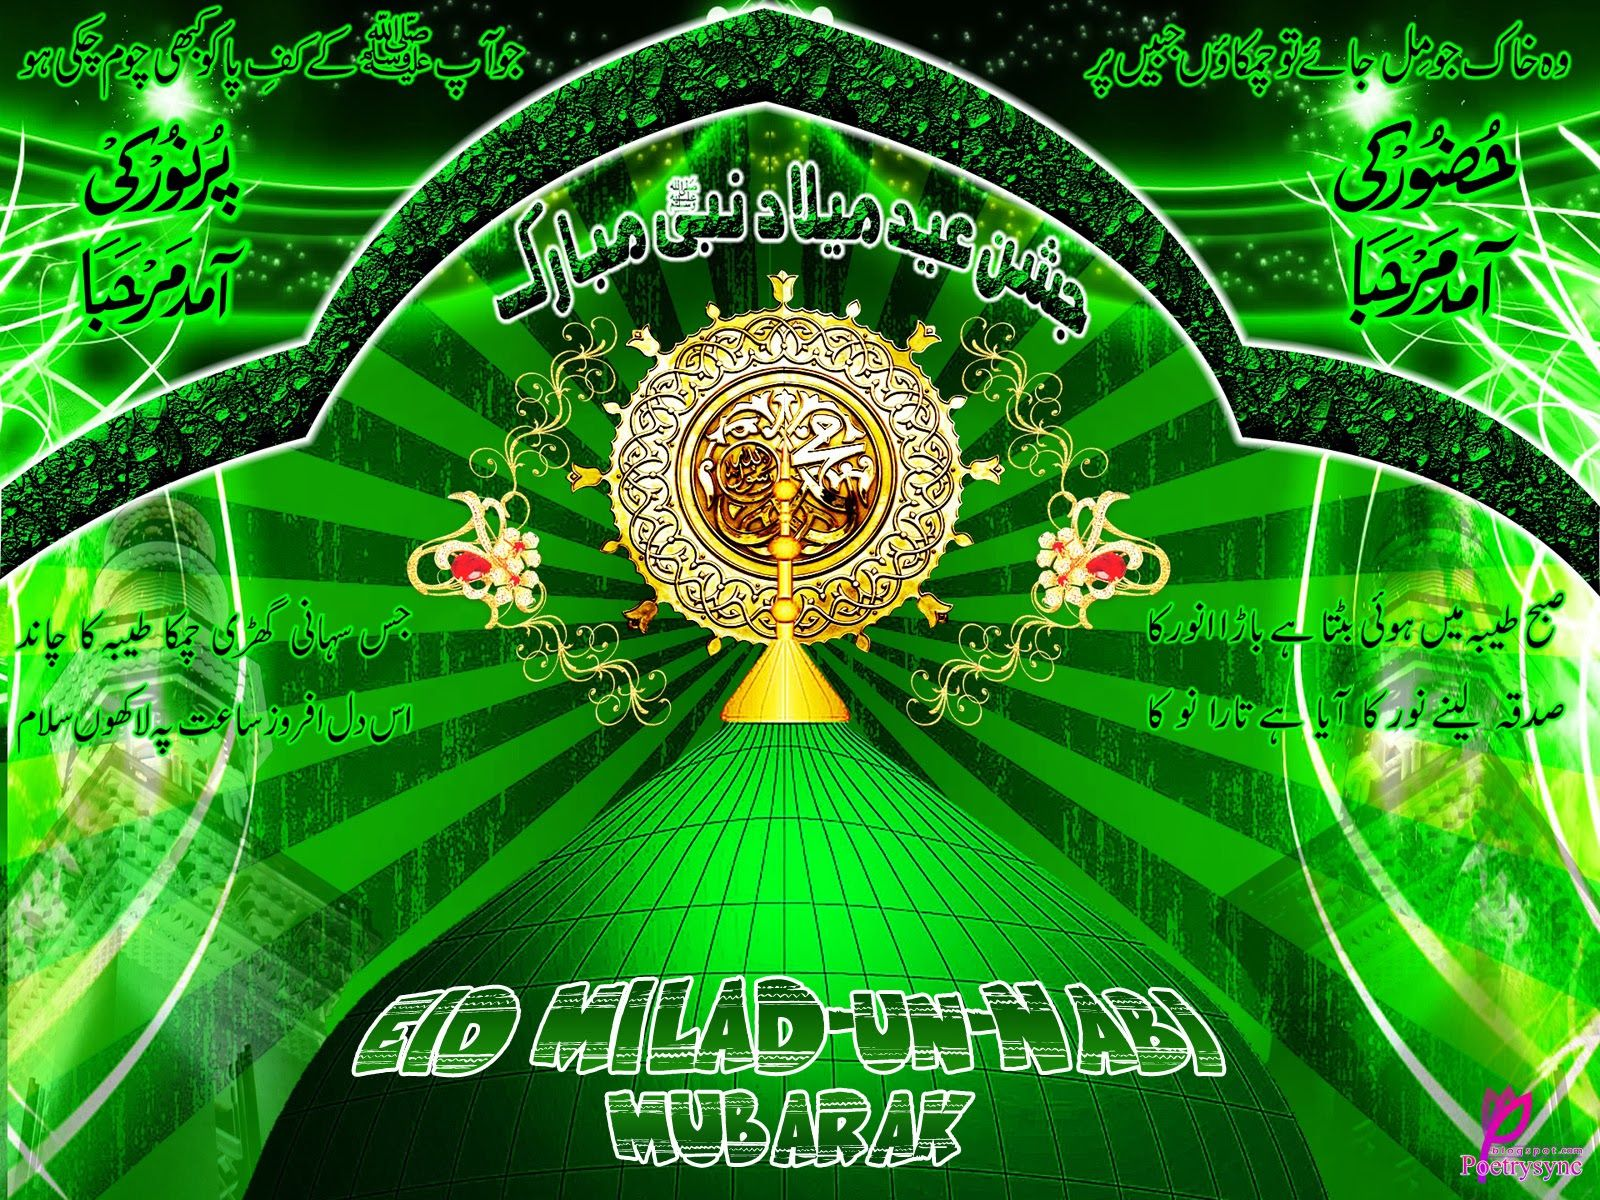 Jashan e eid milad un nabi mubarak beautiful picre card with eid milad un nabi wishes hindi messages and greetings of muhammad saww birthday with beautiful images 12 rabi ul awal mubarak 12 rabi ul awal sms kristyandbryce Choice Image